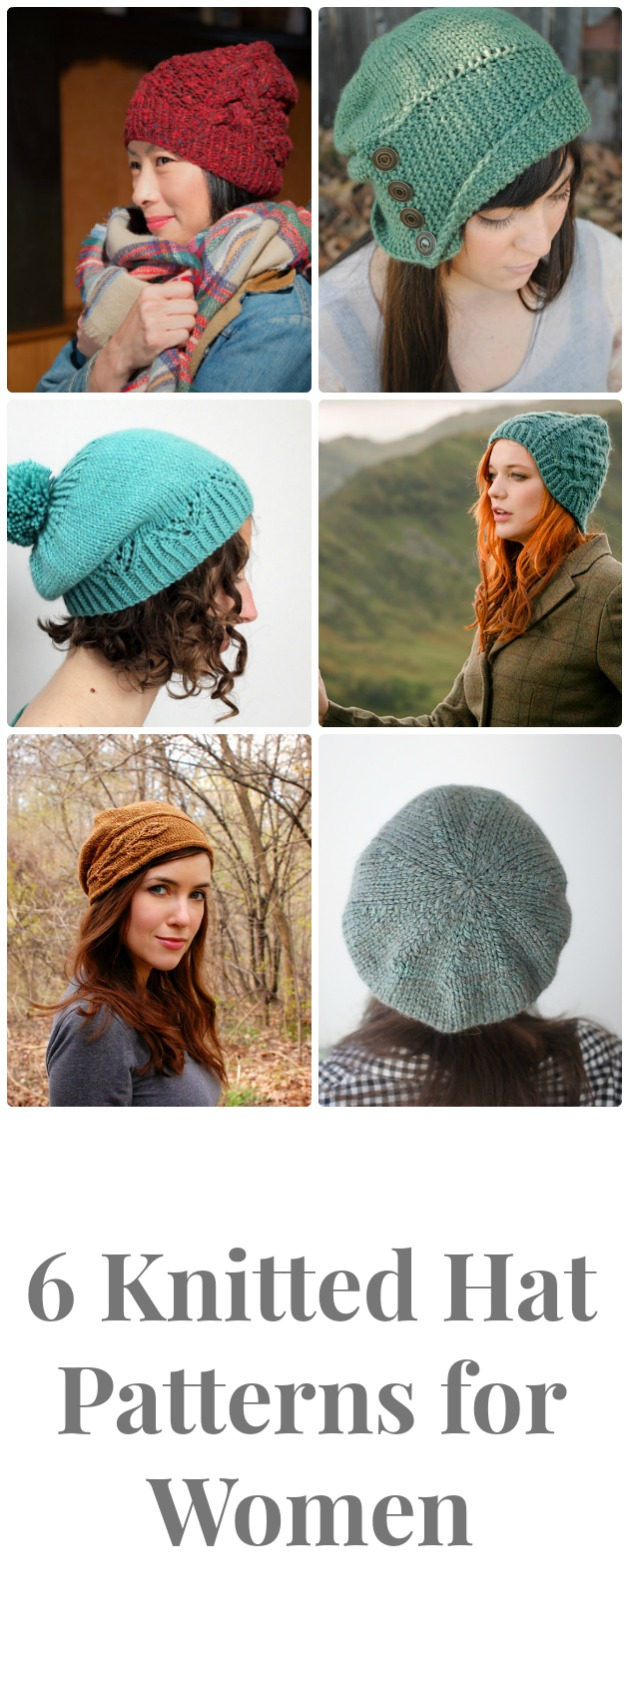 Knitted Hats Patterns 6 Knitted Hat Patterns For Women The Fibre Co